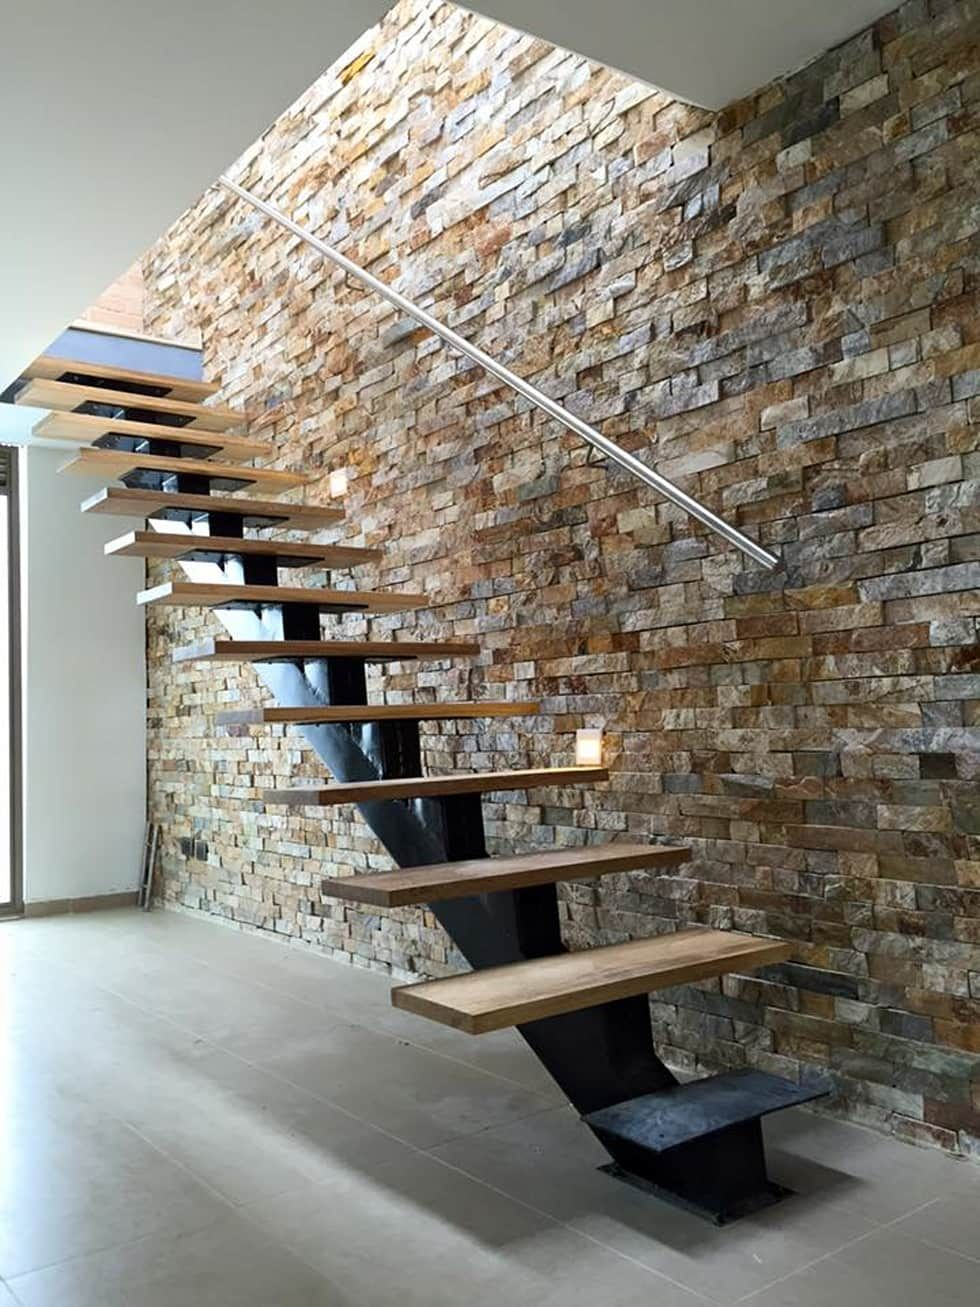 Im genes de decoraci n y dise o de interiores pinterest for Diseno de escaleras interiores